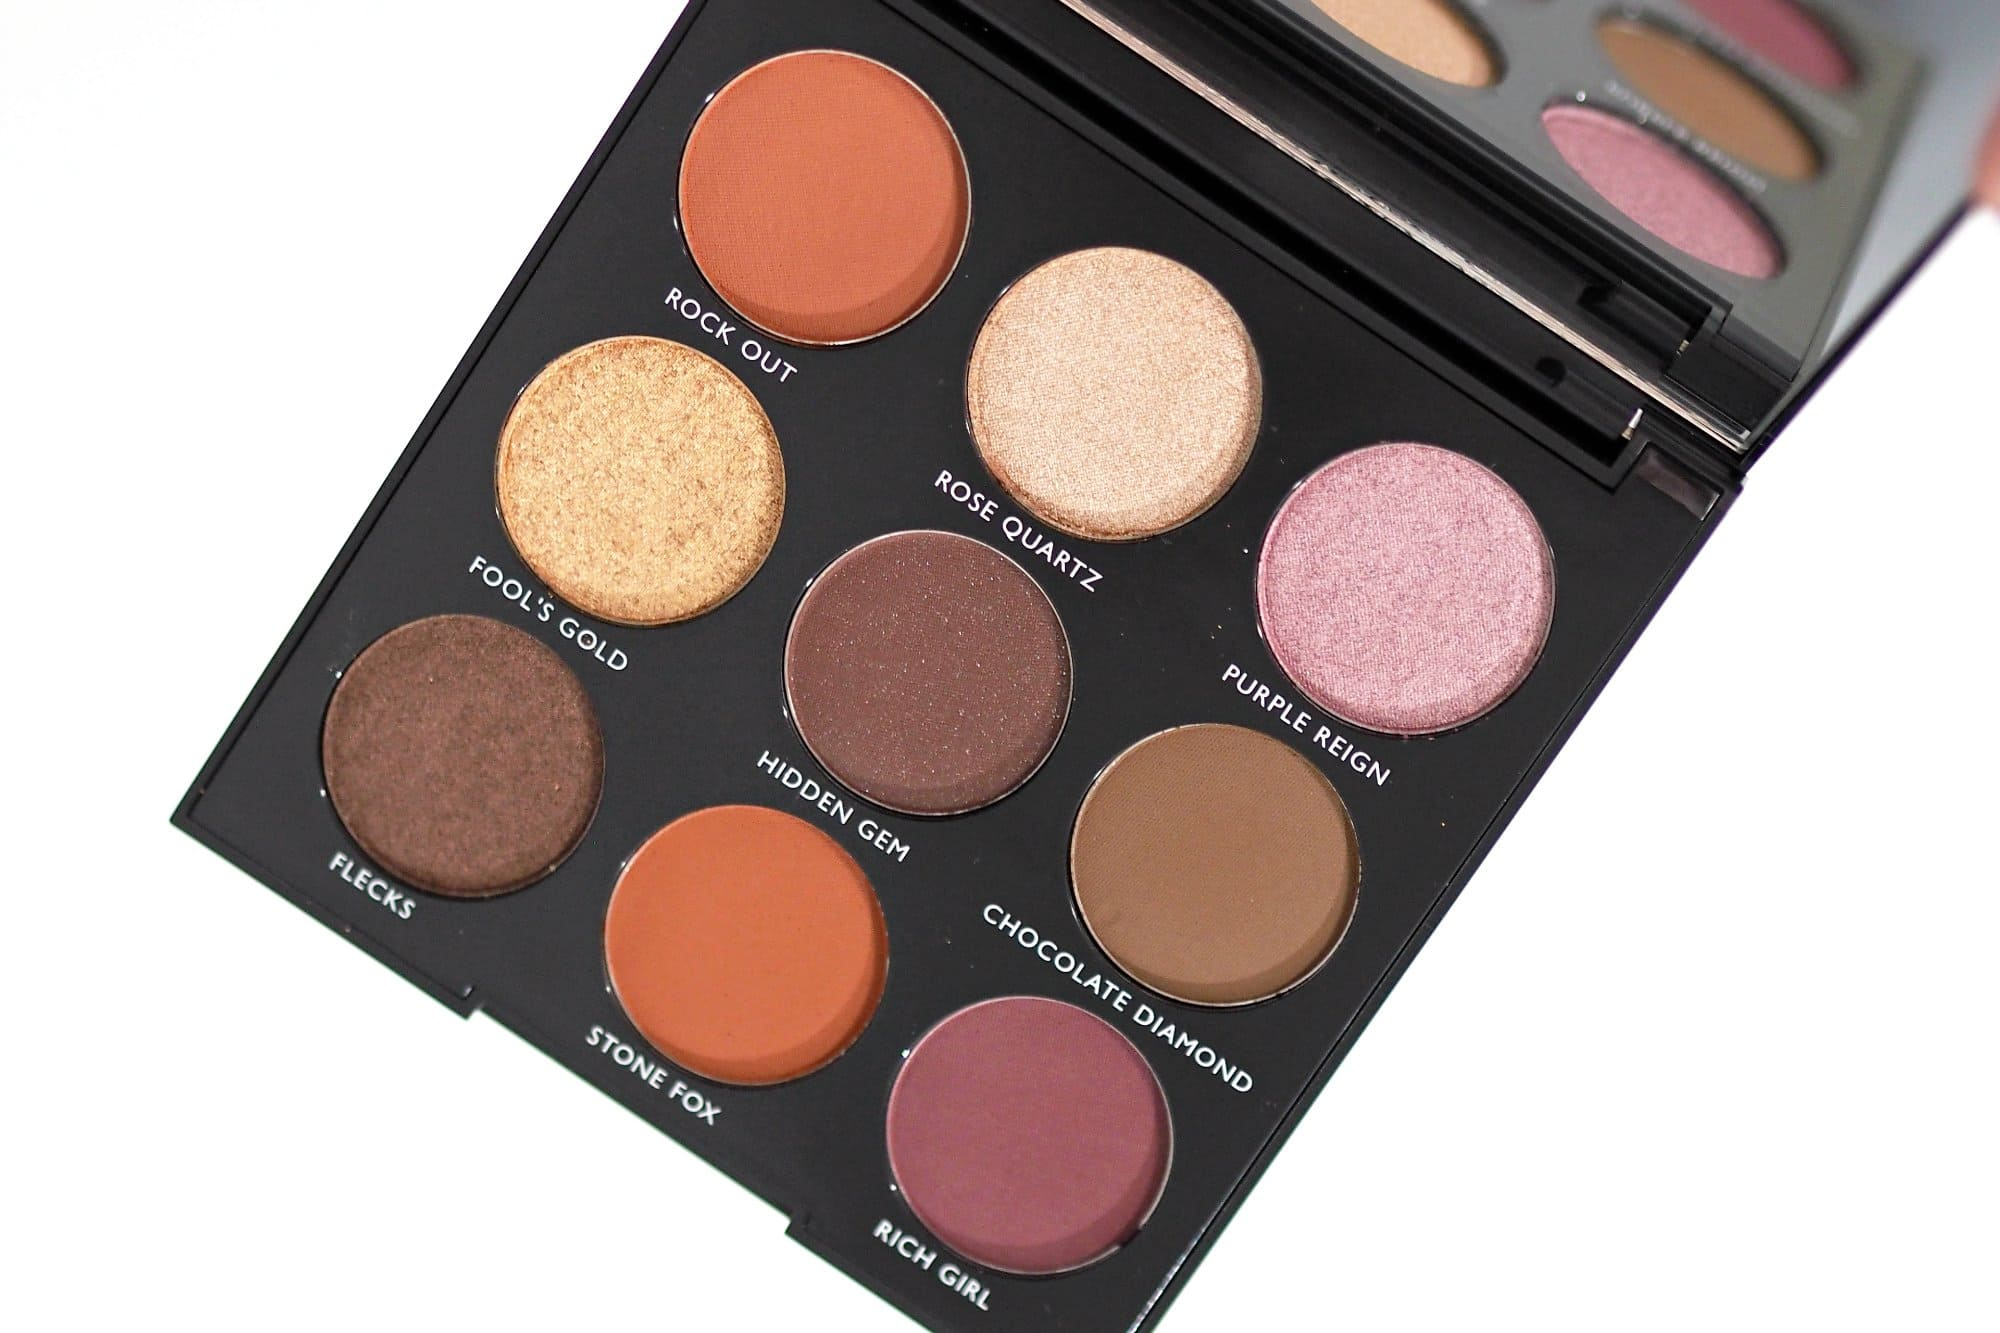 morphe 9c jewel crew eyeshadow palette review and swatches